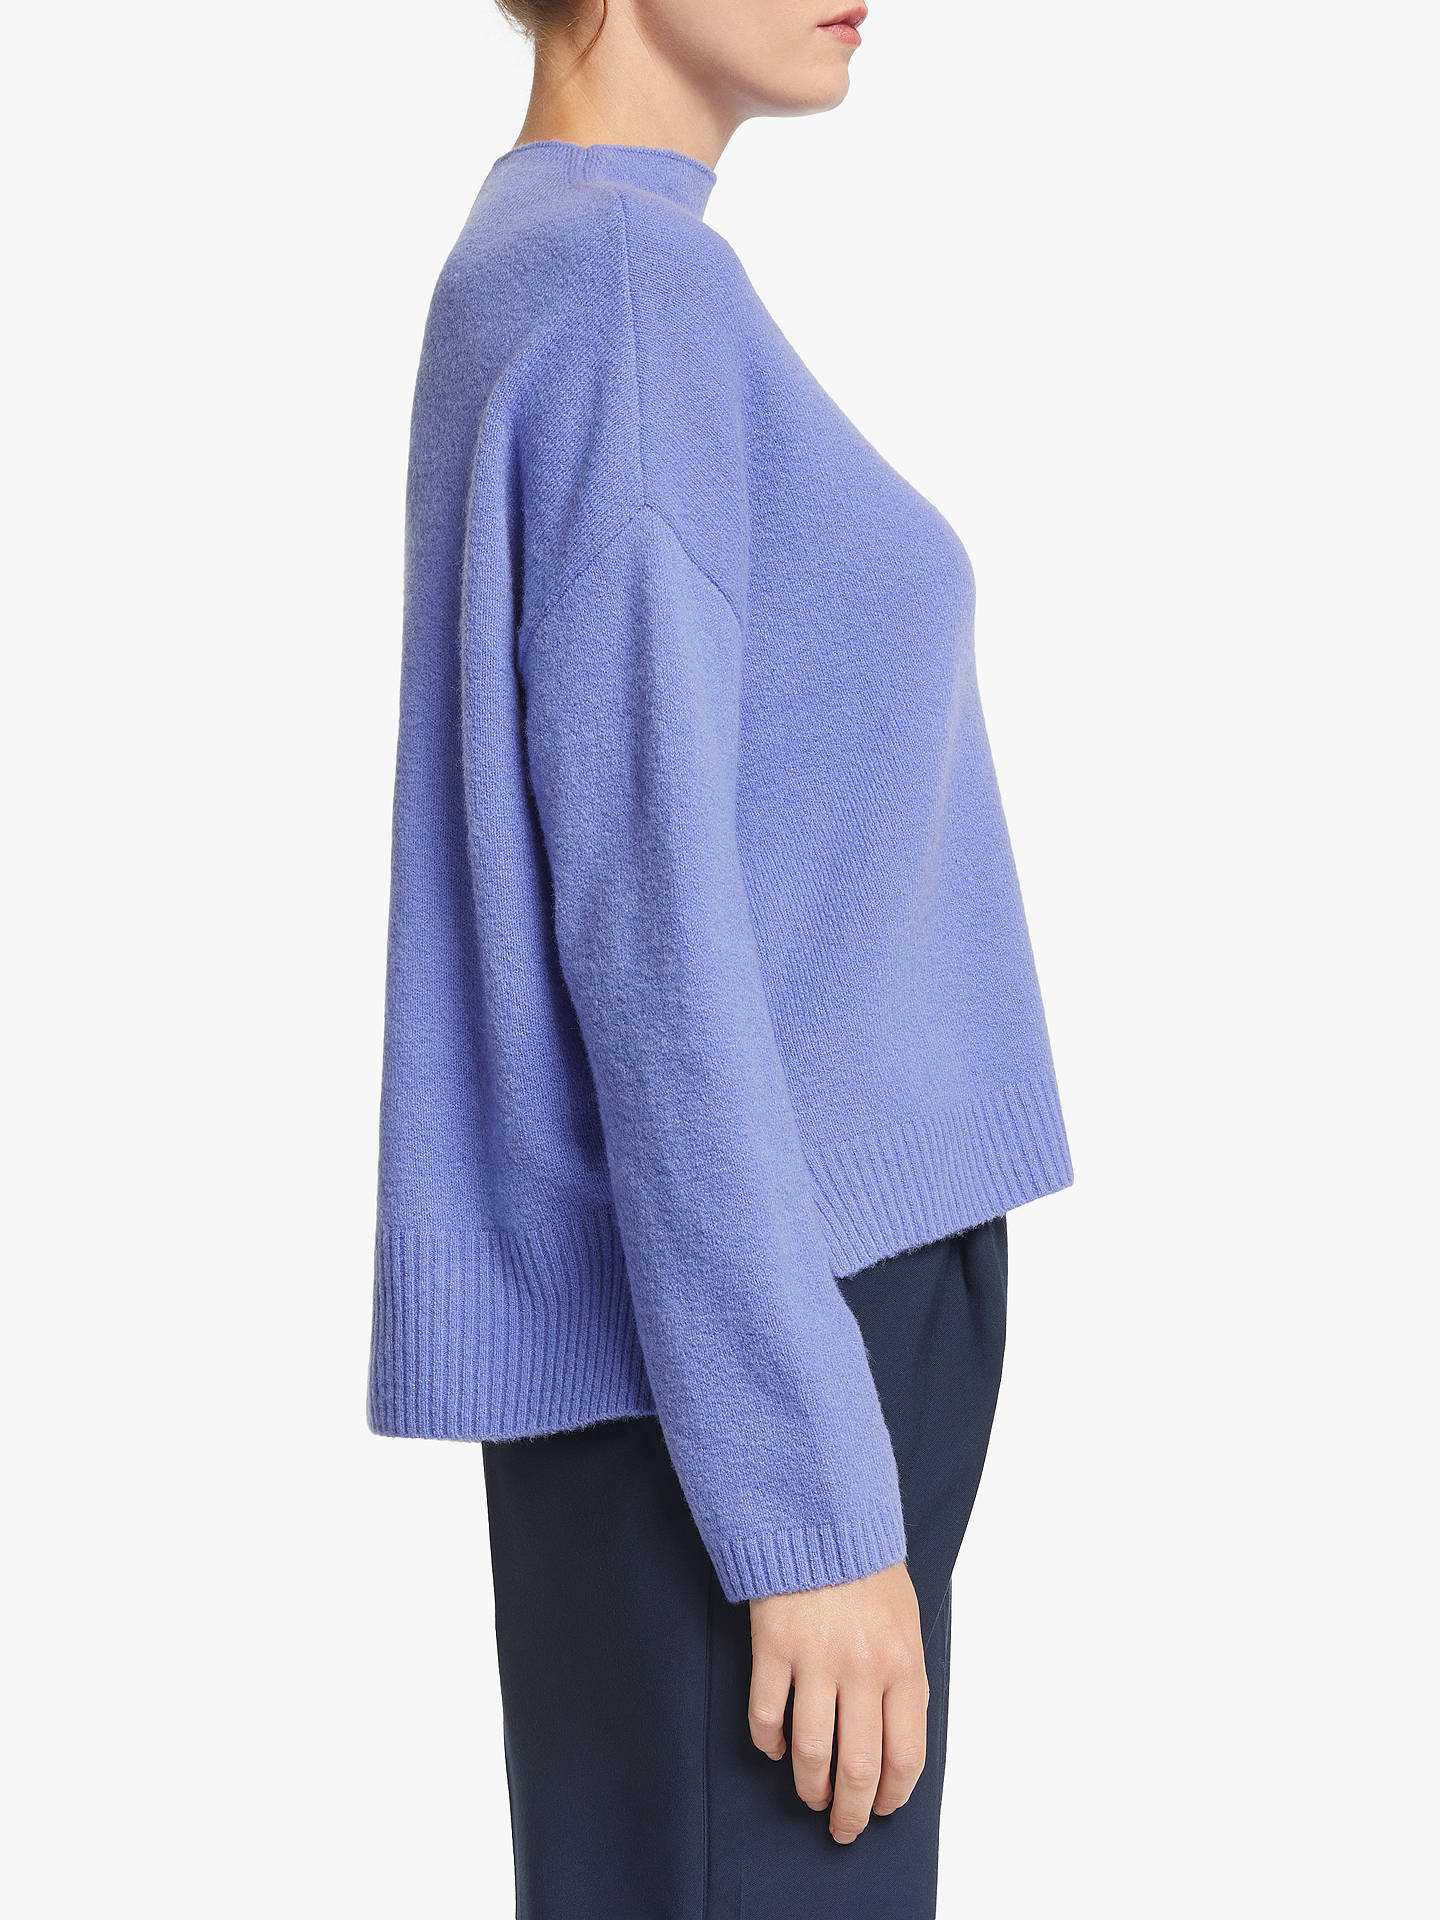 Buy John Lewis & Partners Merino Blend Boxy Funnel Neck Sweatshirt, Denim Blue, 14 Online at johnlewis.com